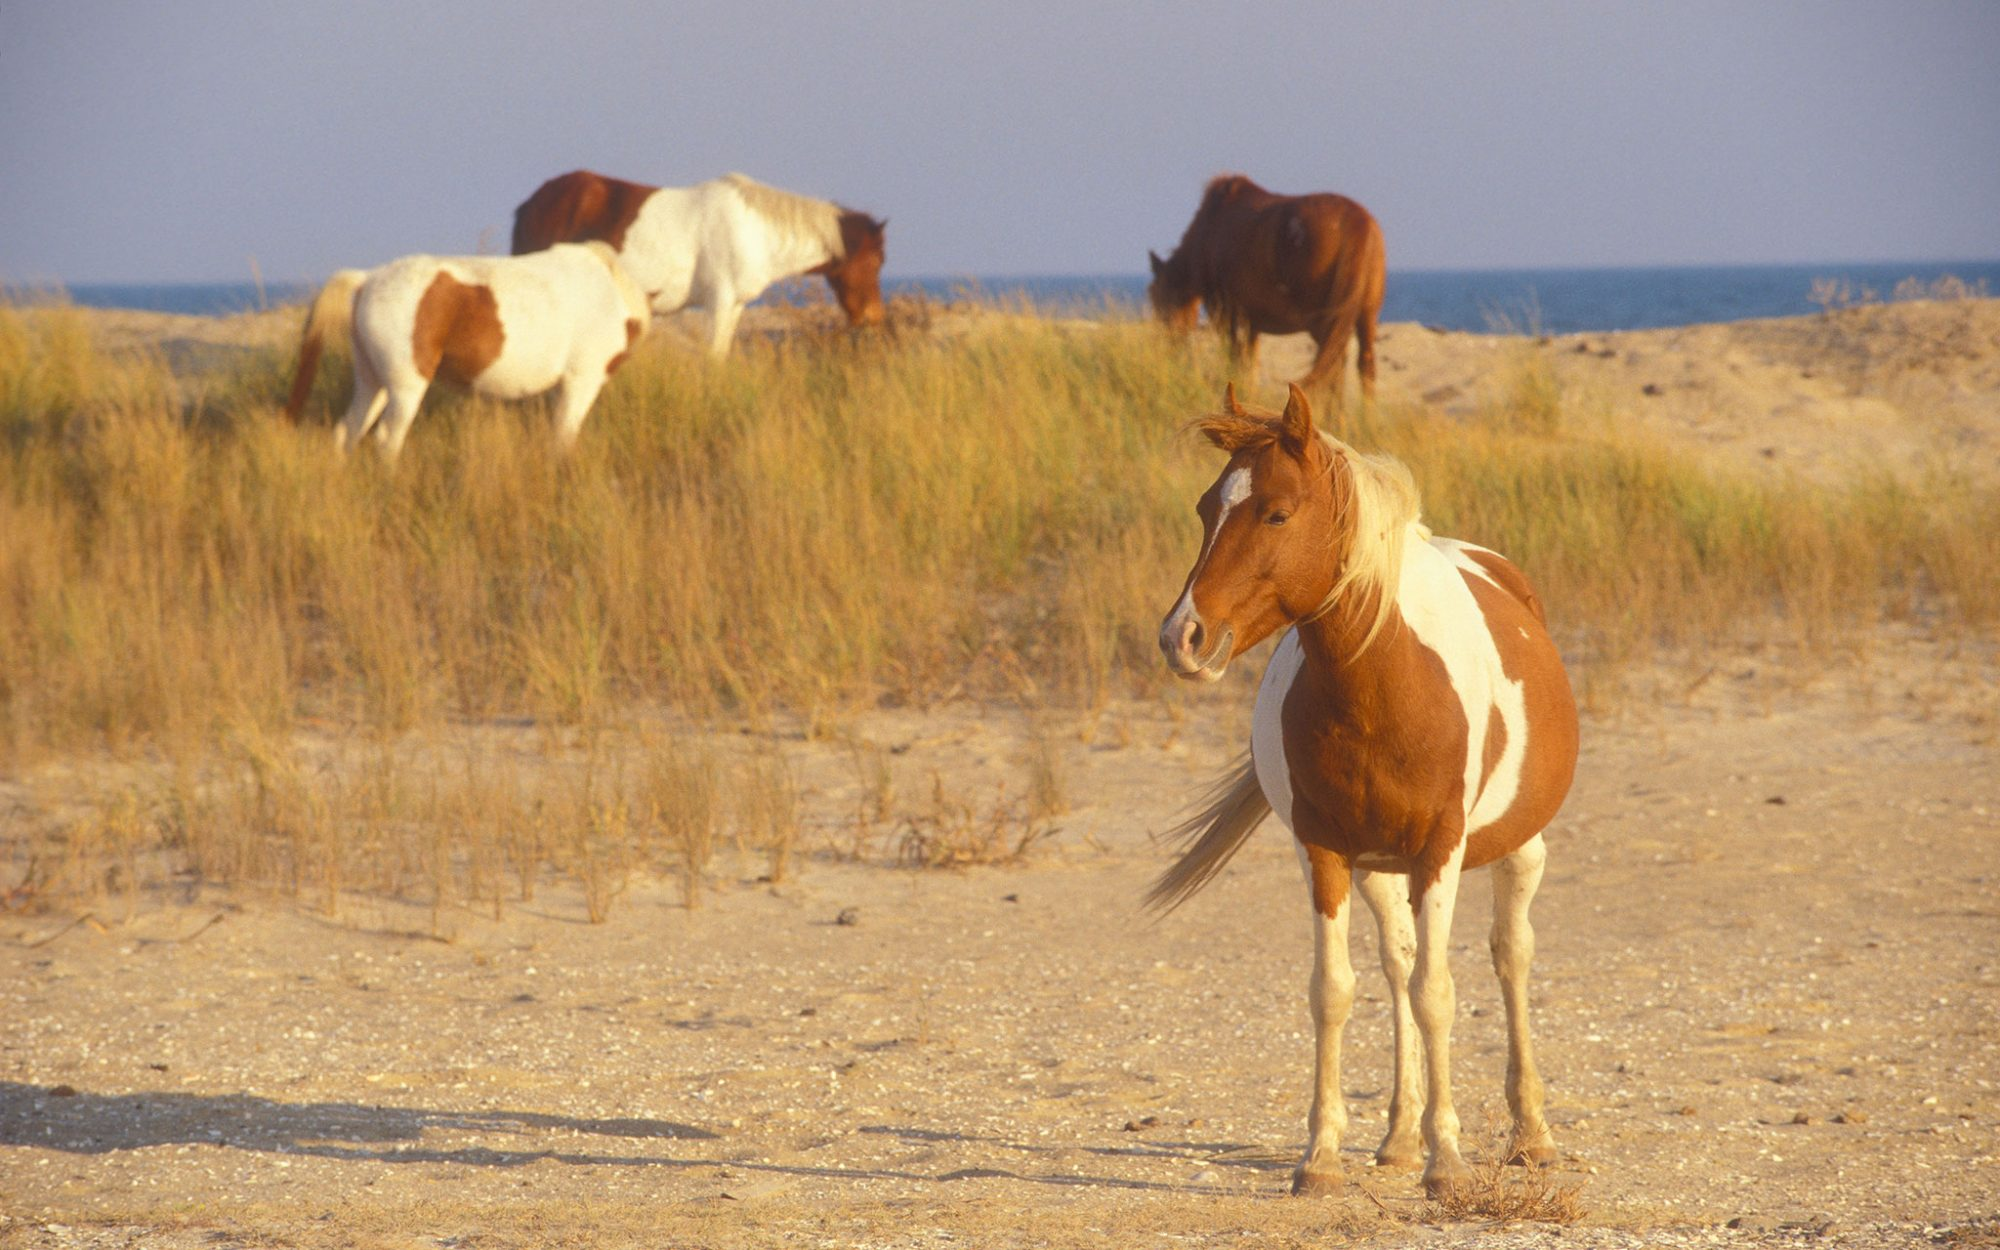 Chincoteague, VA